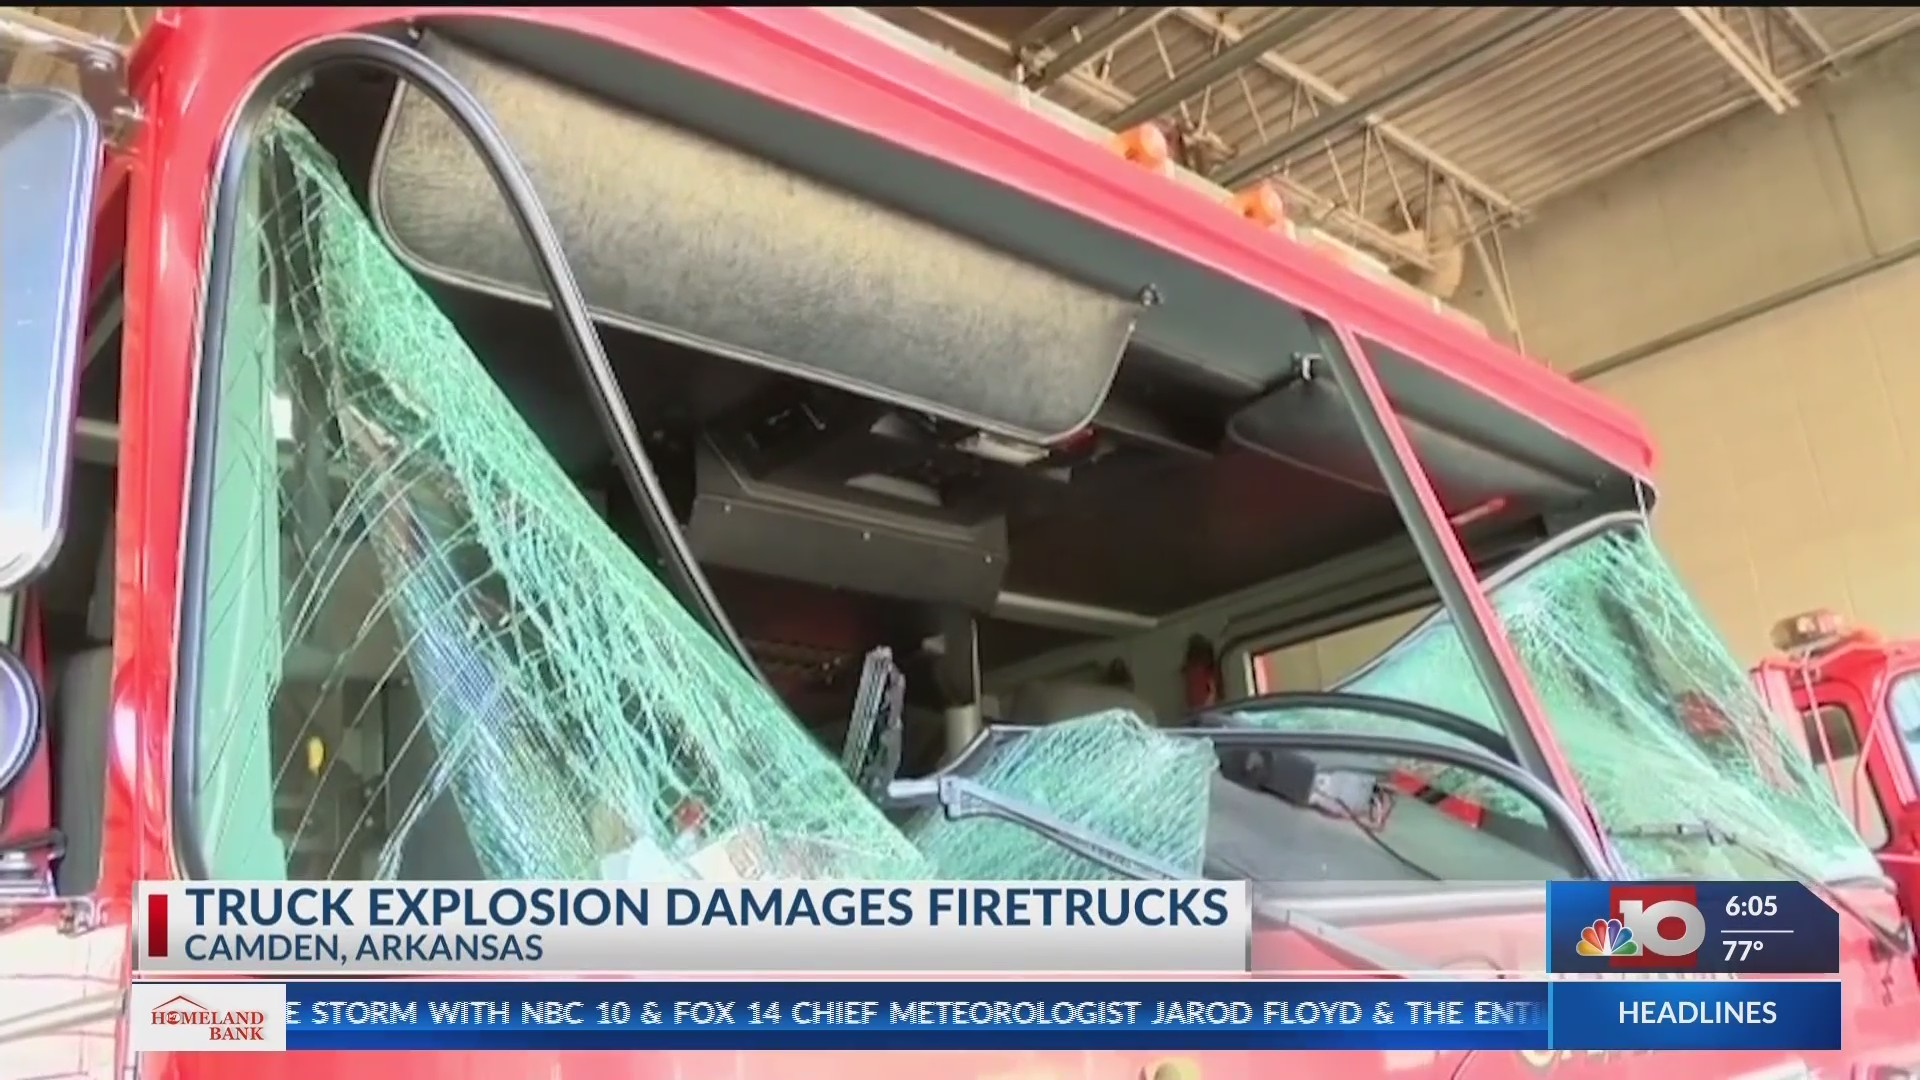 Truck explosion damages fire trucks